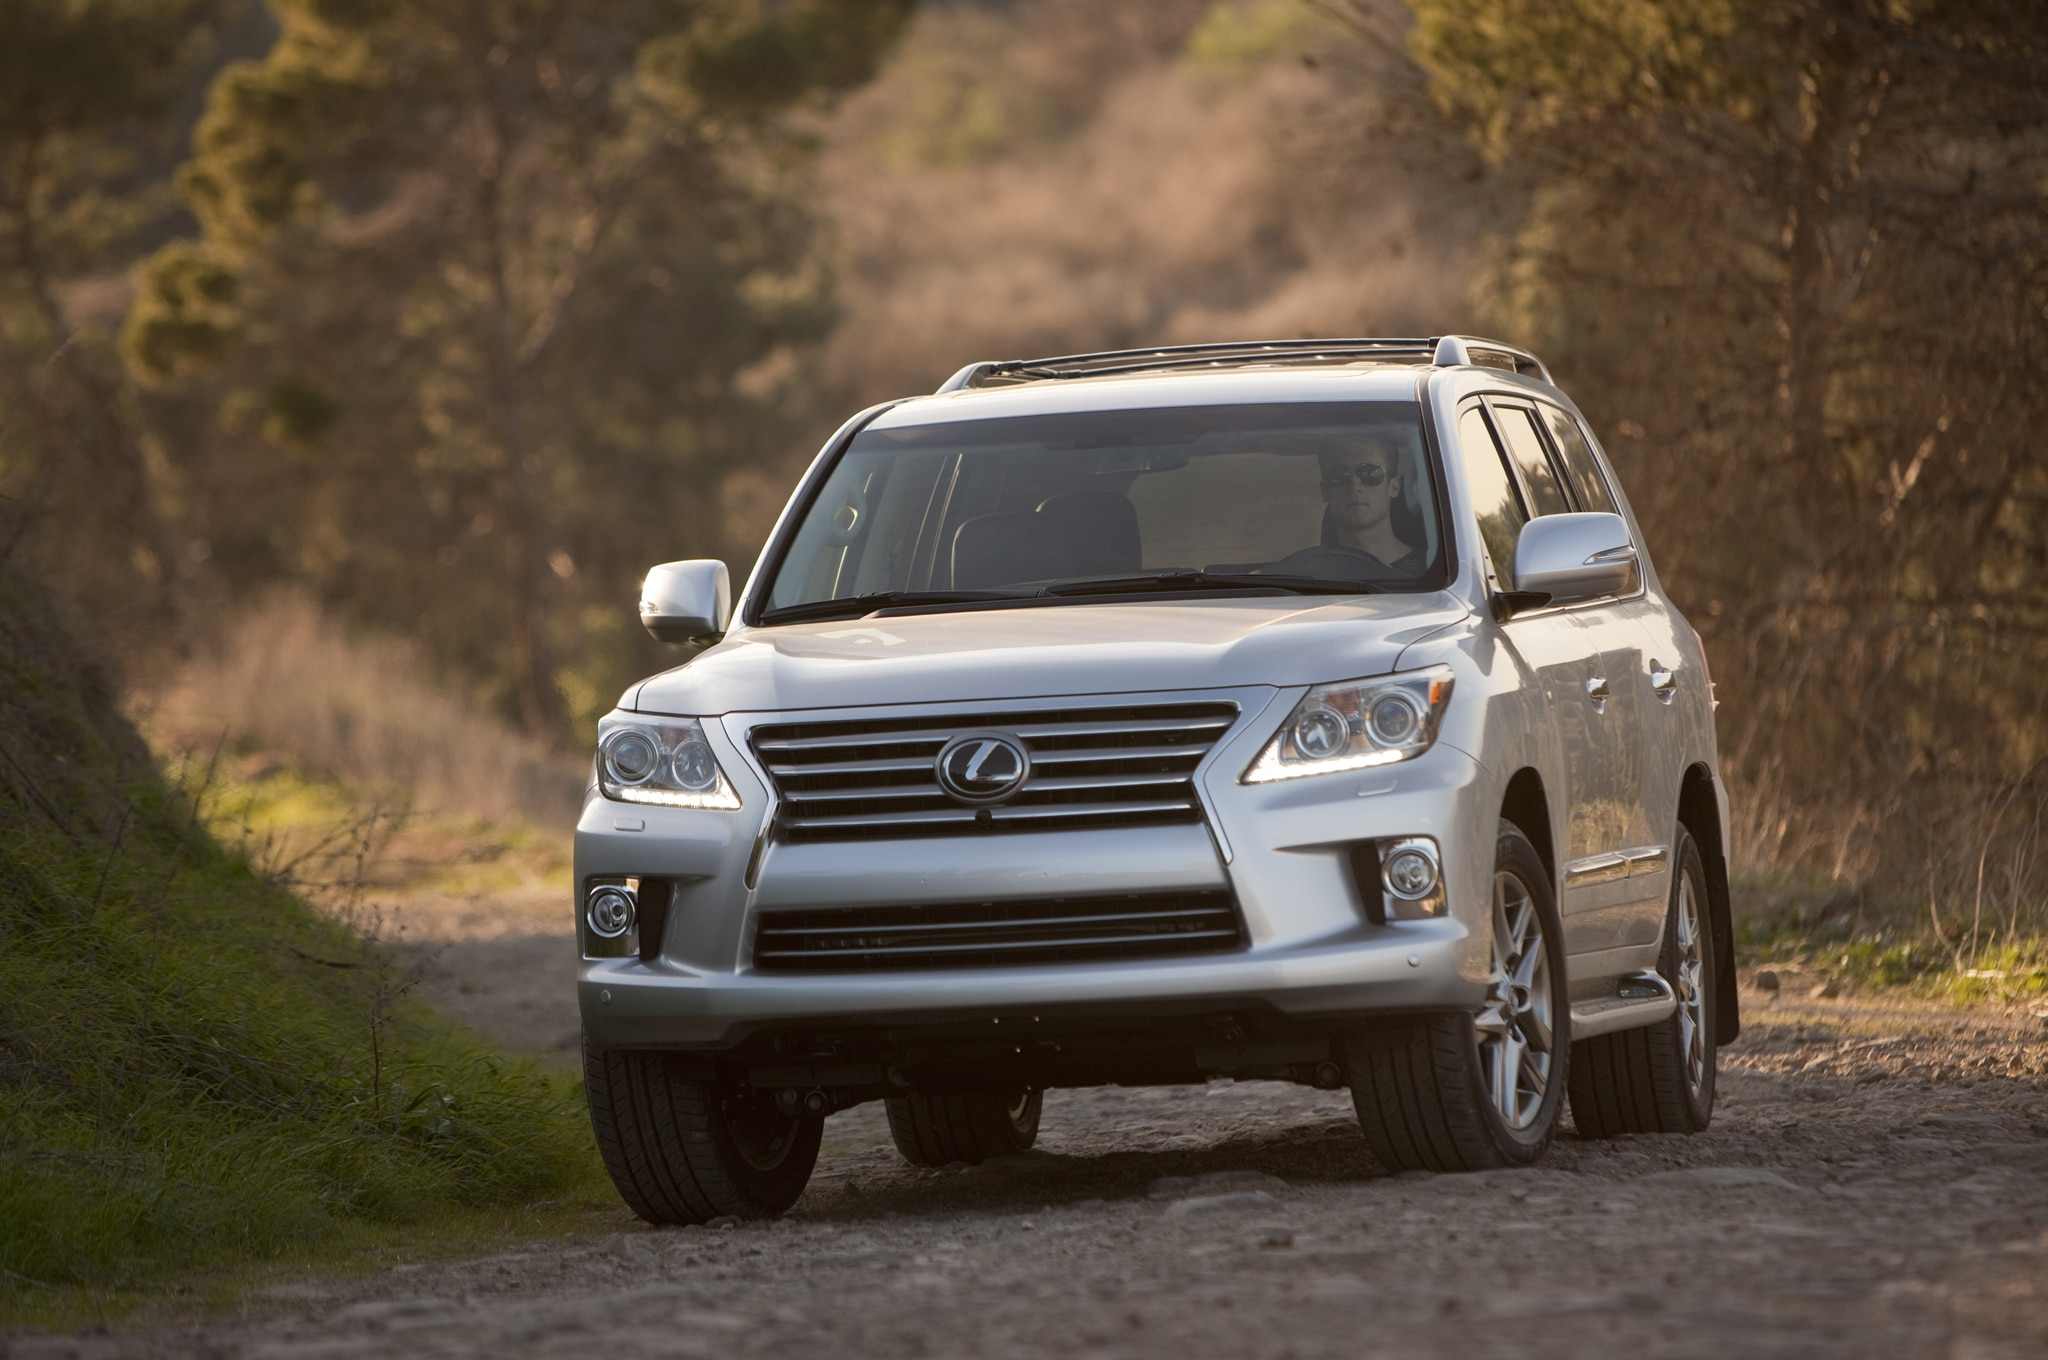 2015 Lexus LX 570 Review